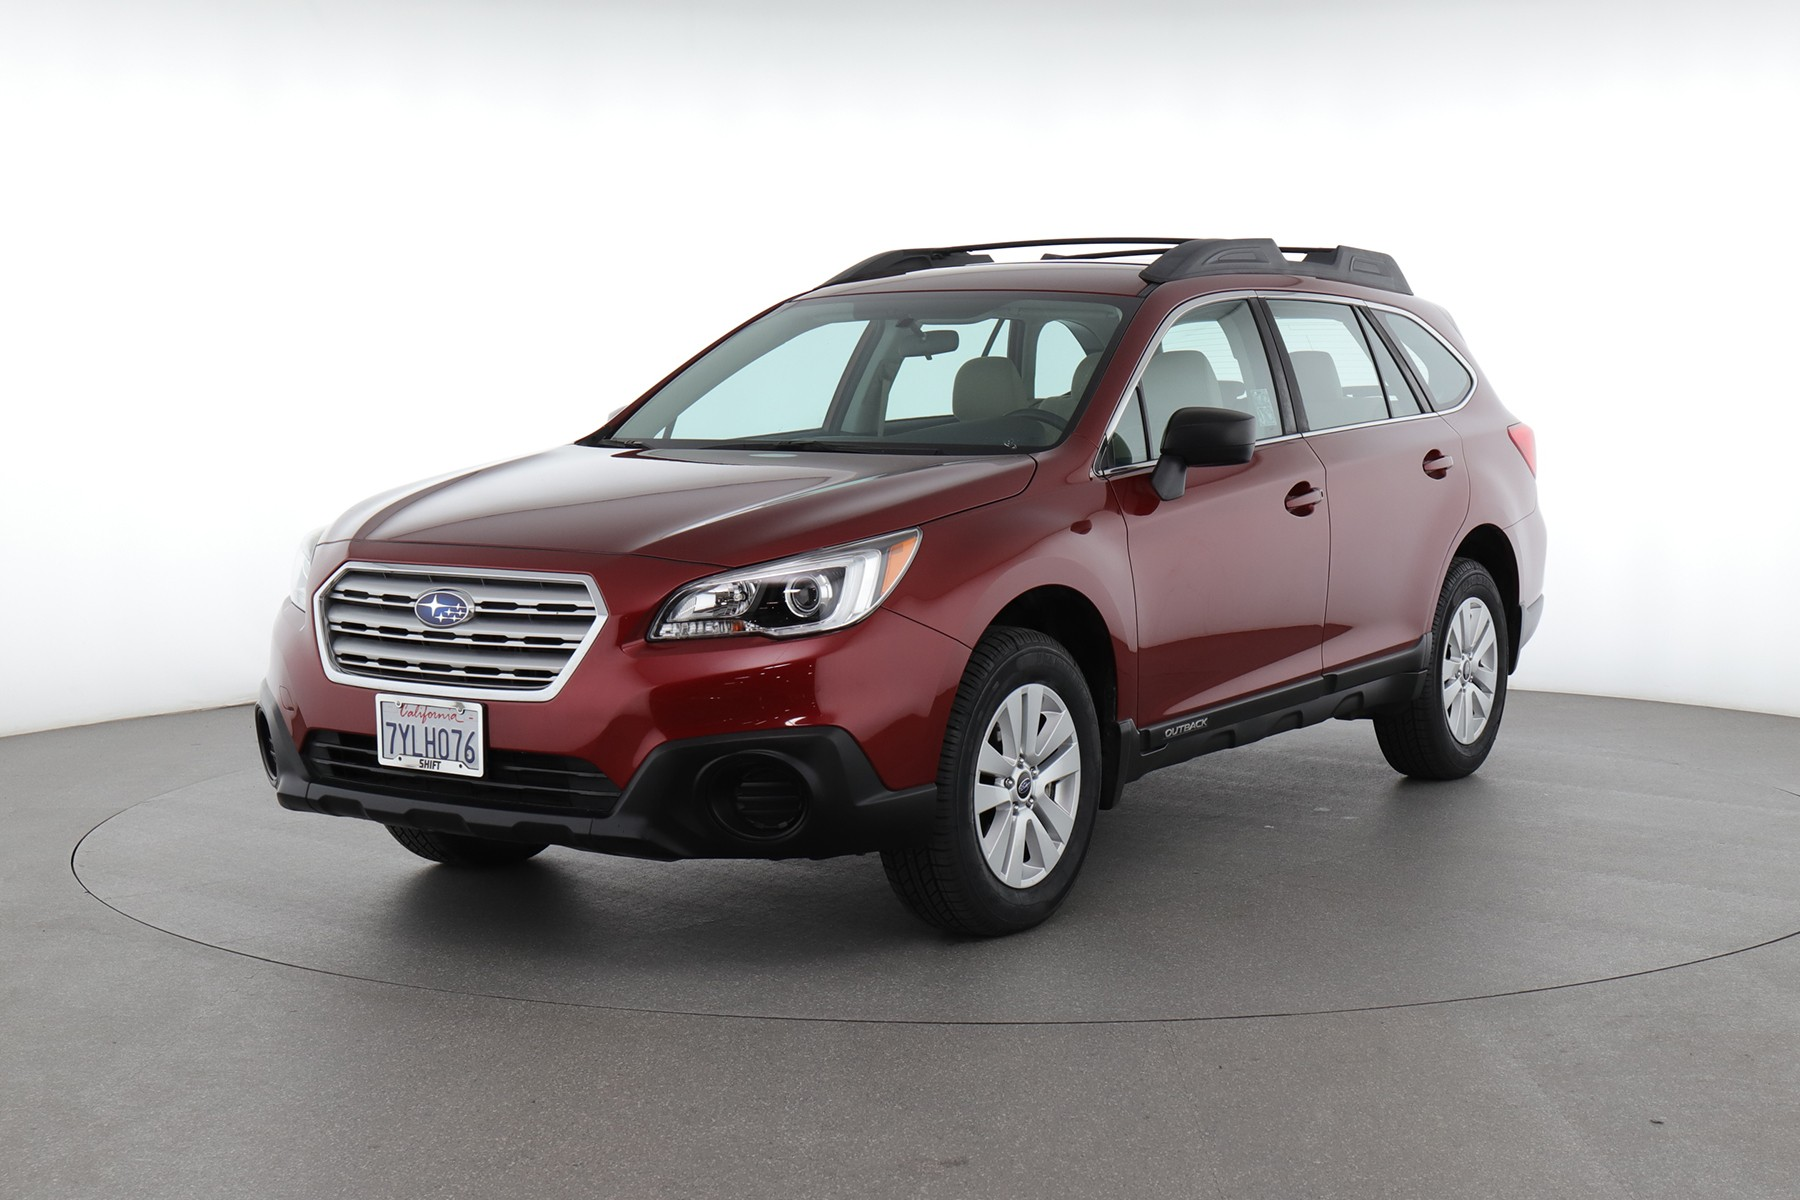 Subaru Outback (from $24,450)